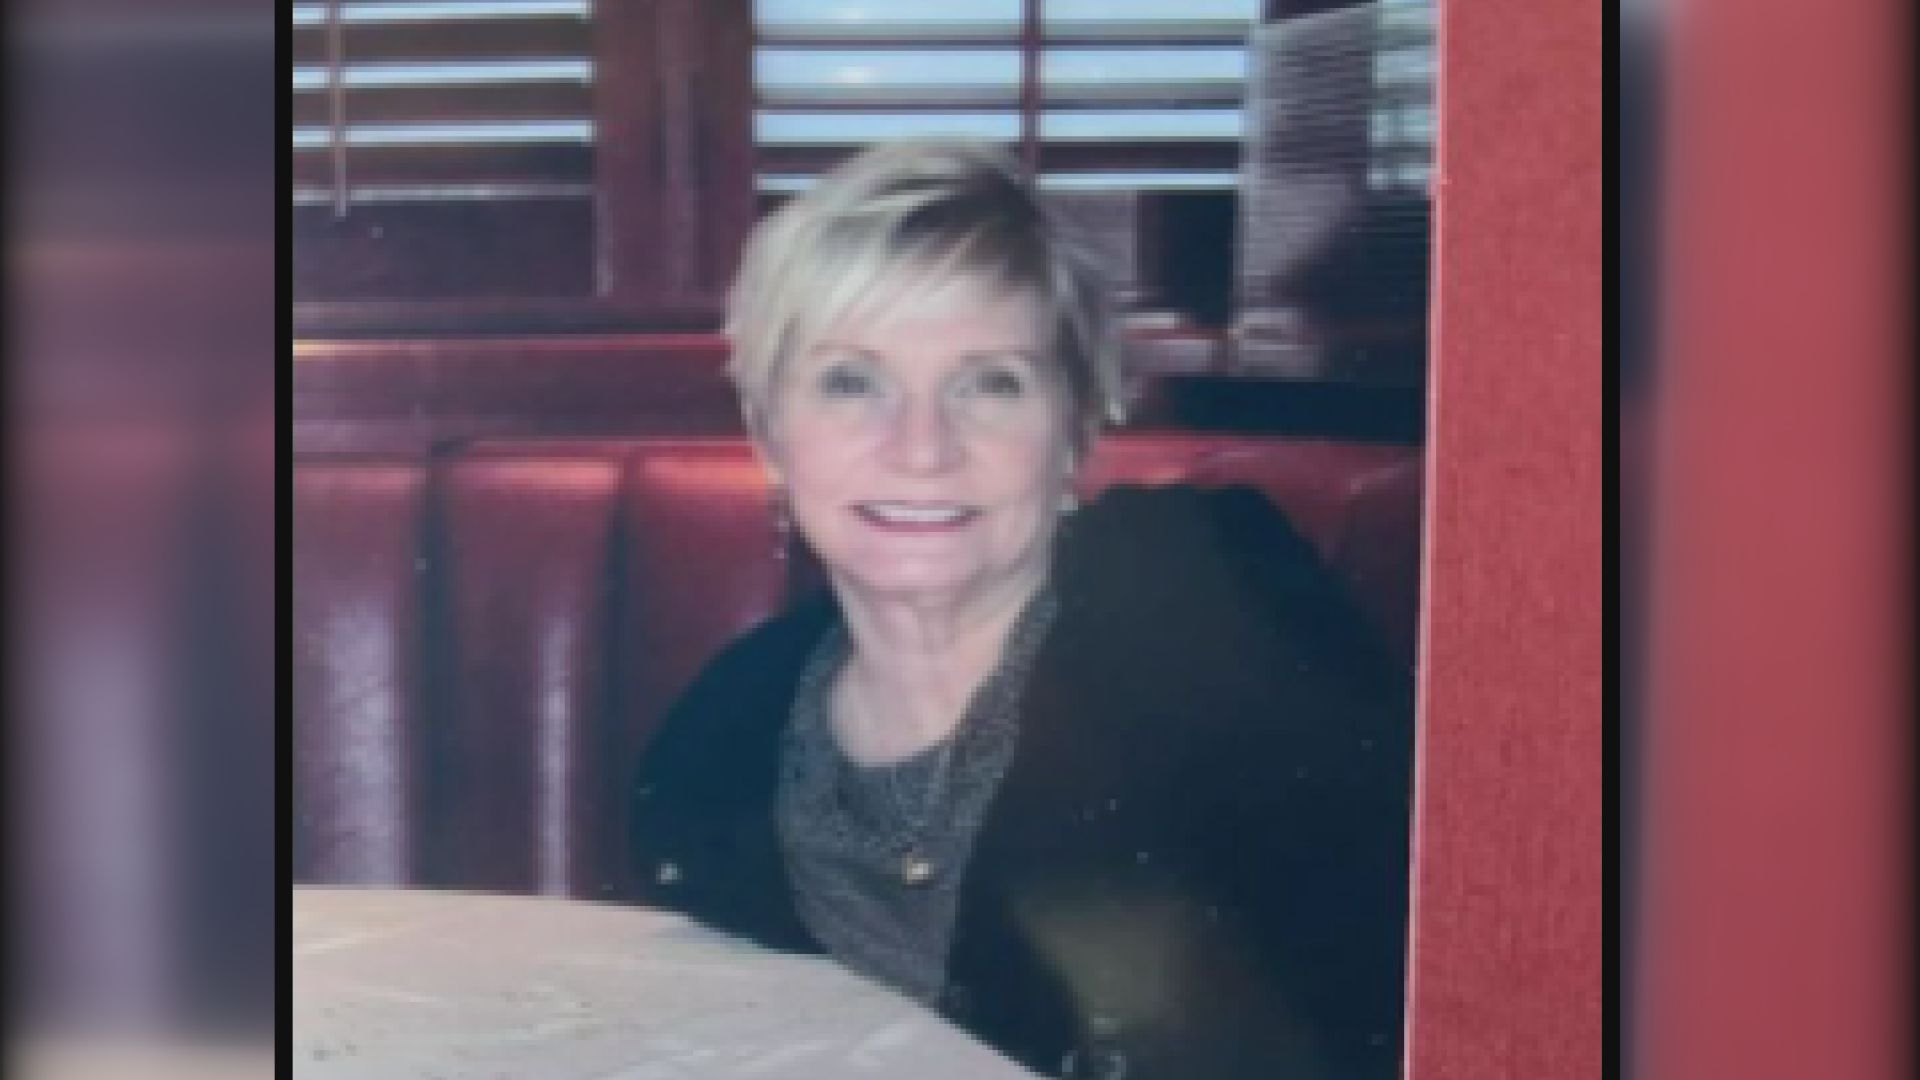 Family offers $10K reward to find missing Franklin woman